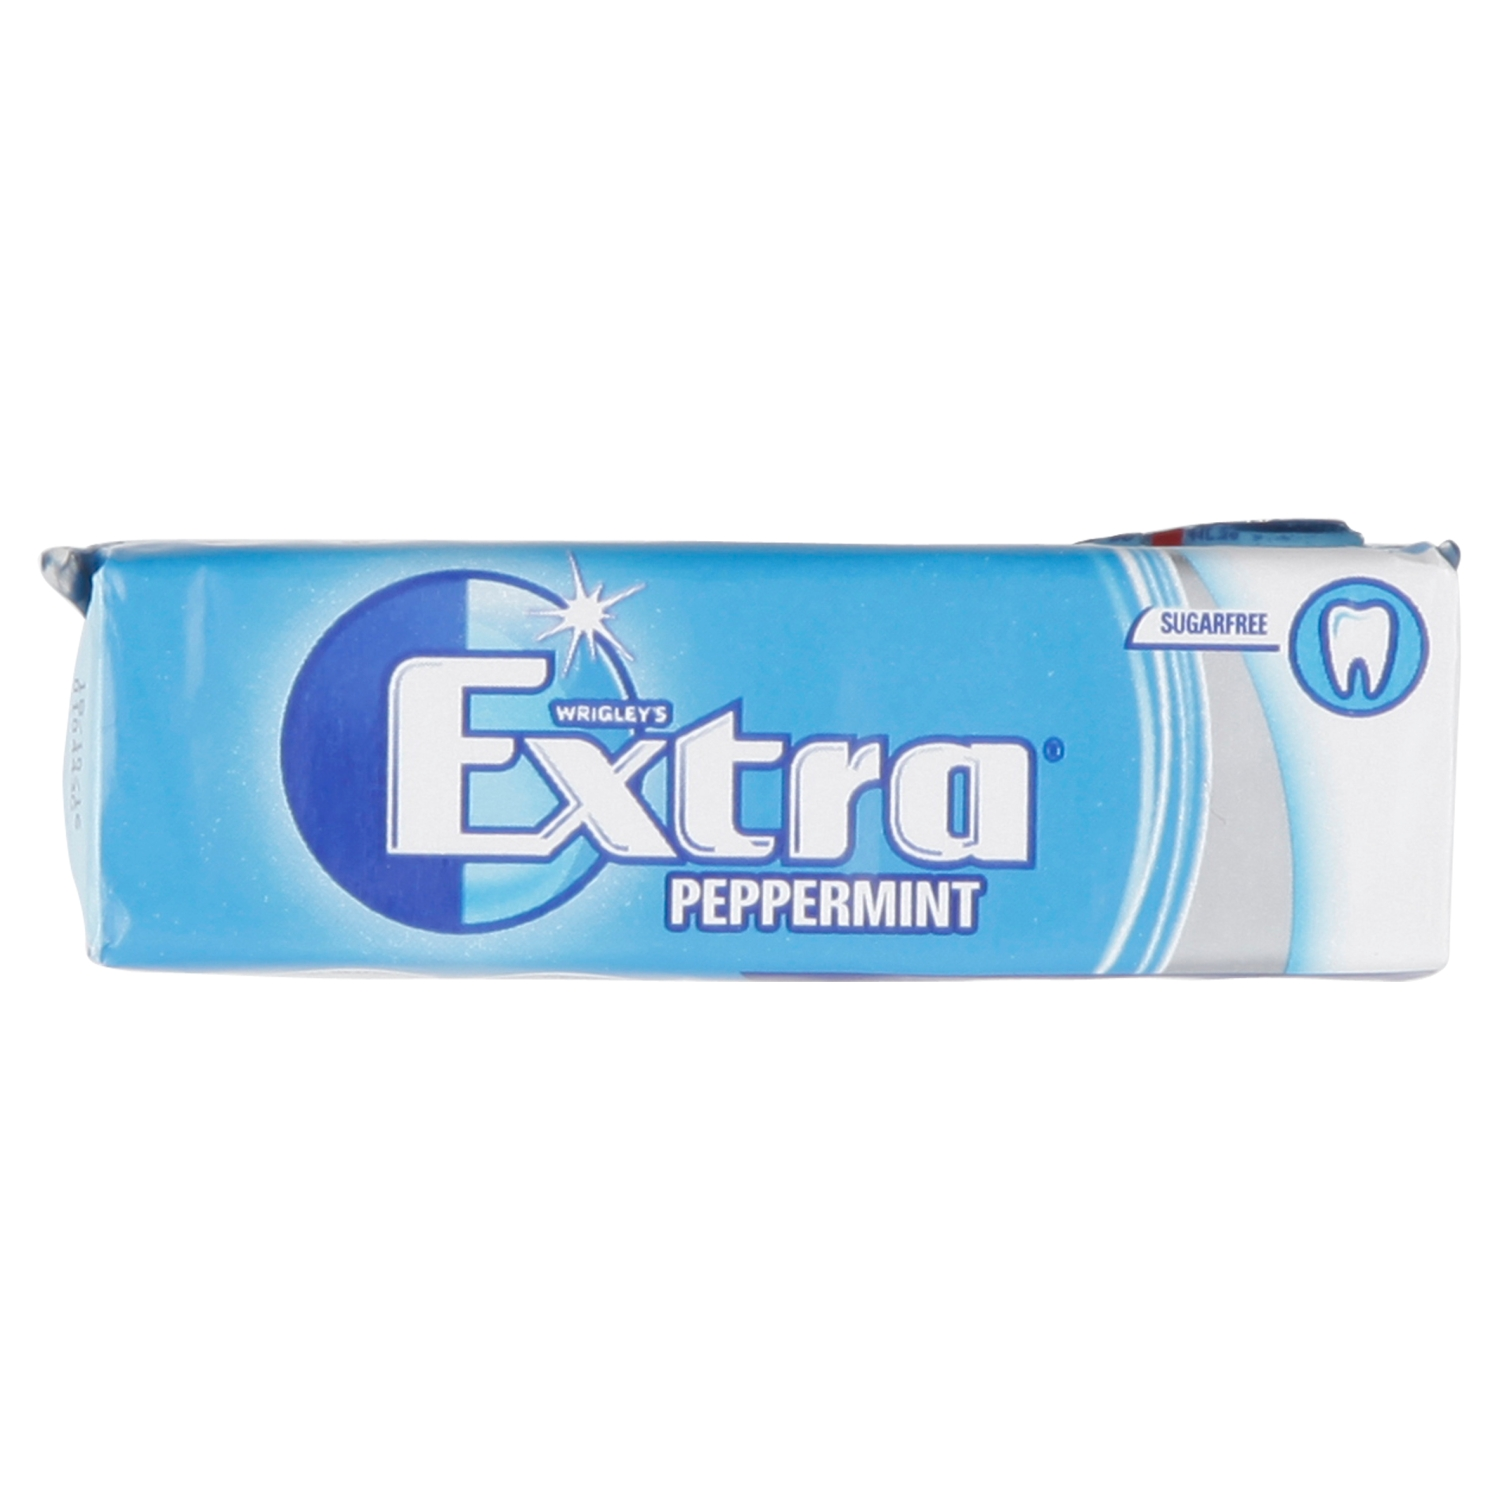 Wrigley's Extra Peppermint Sugarfree Chewing Gum 10 Pieces 14g